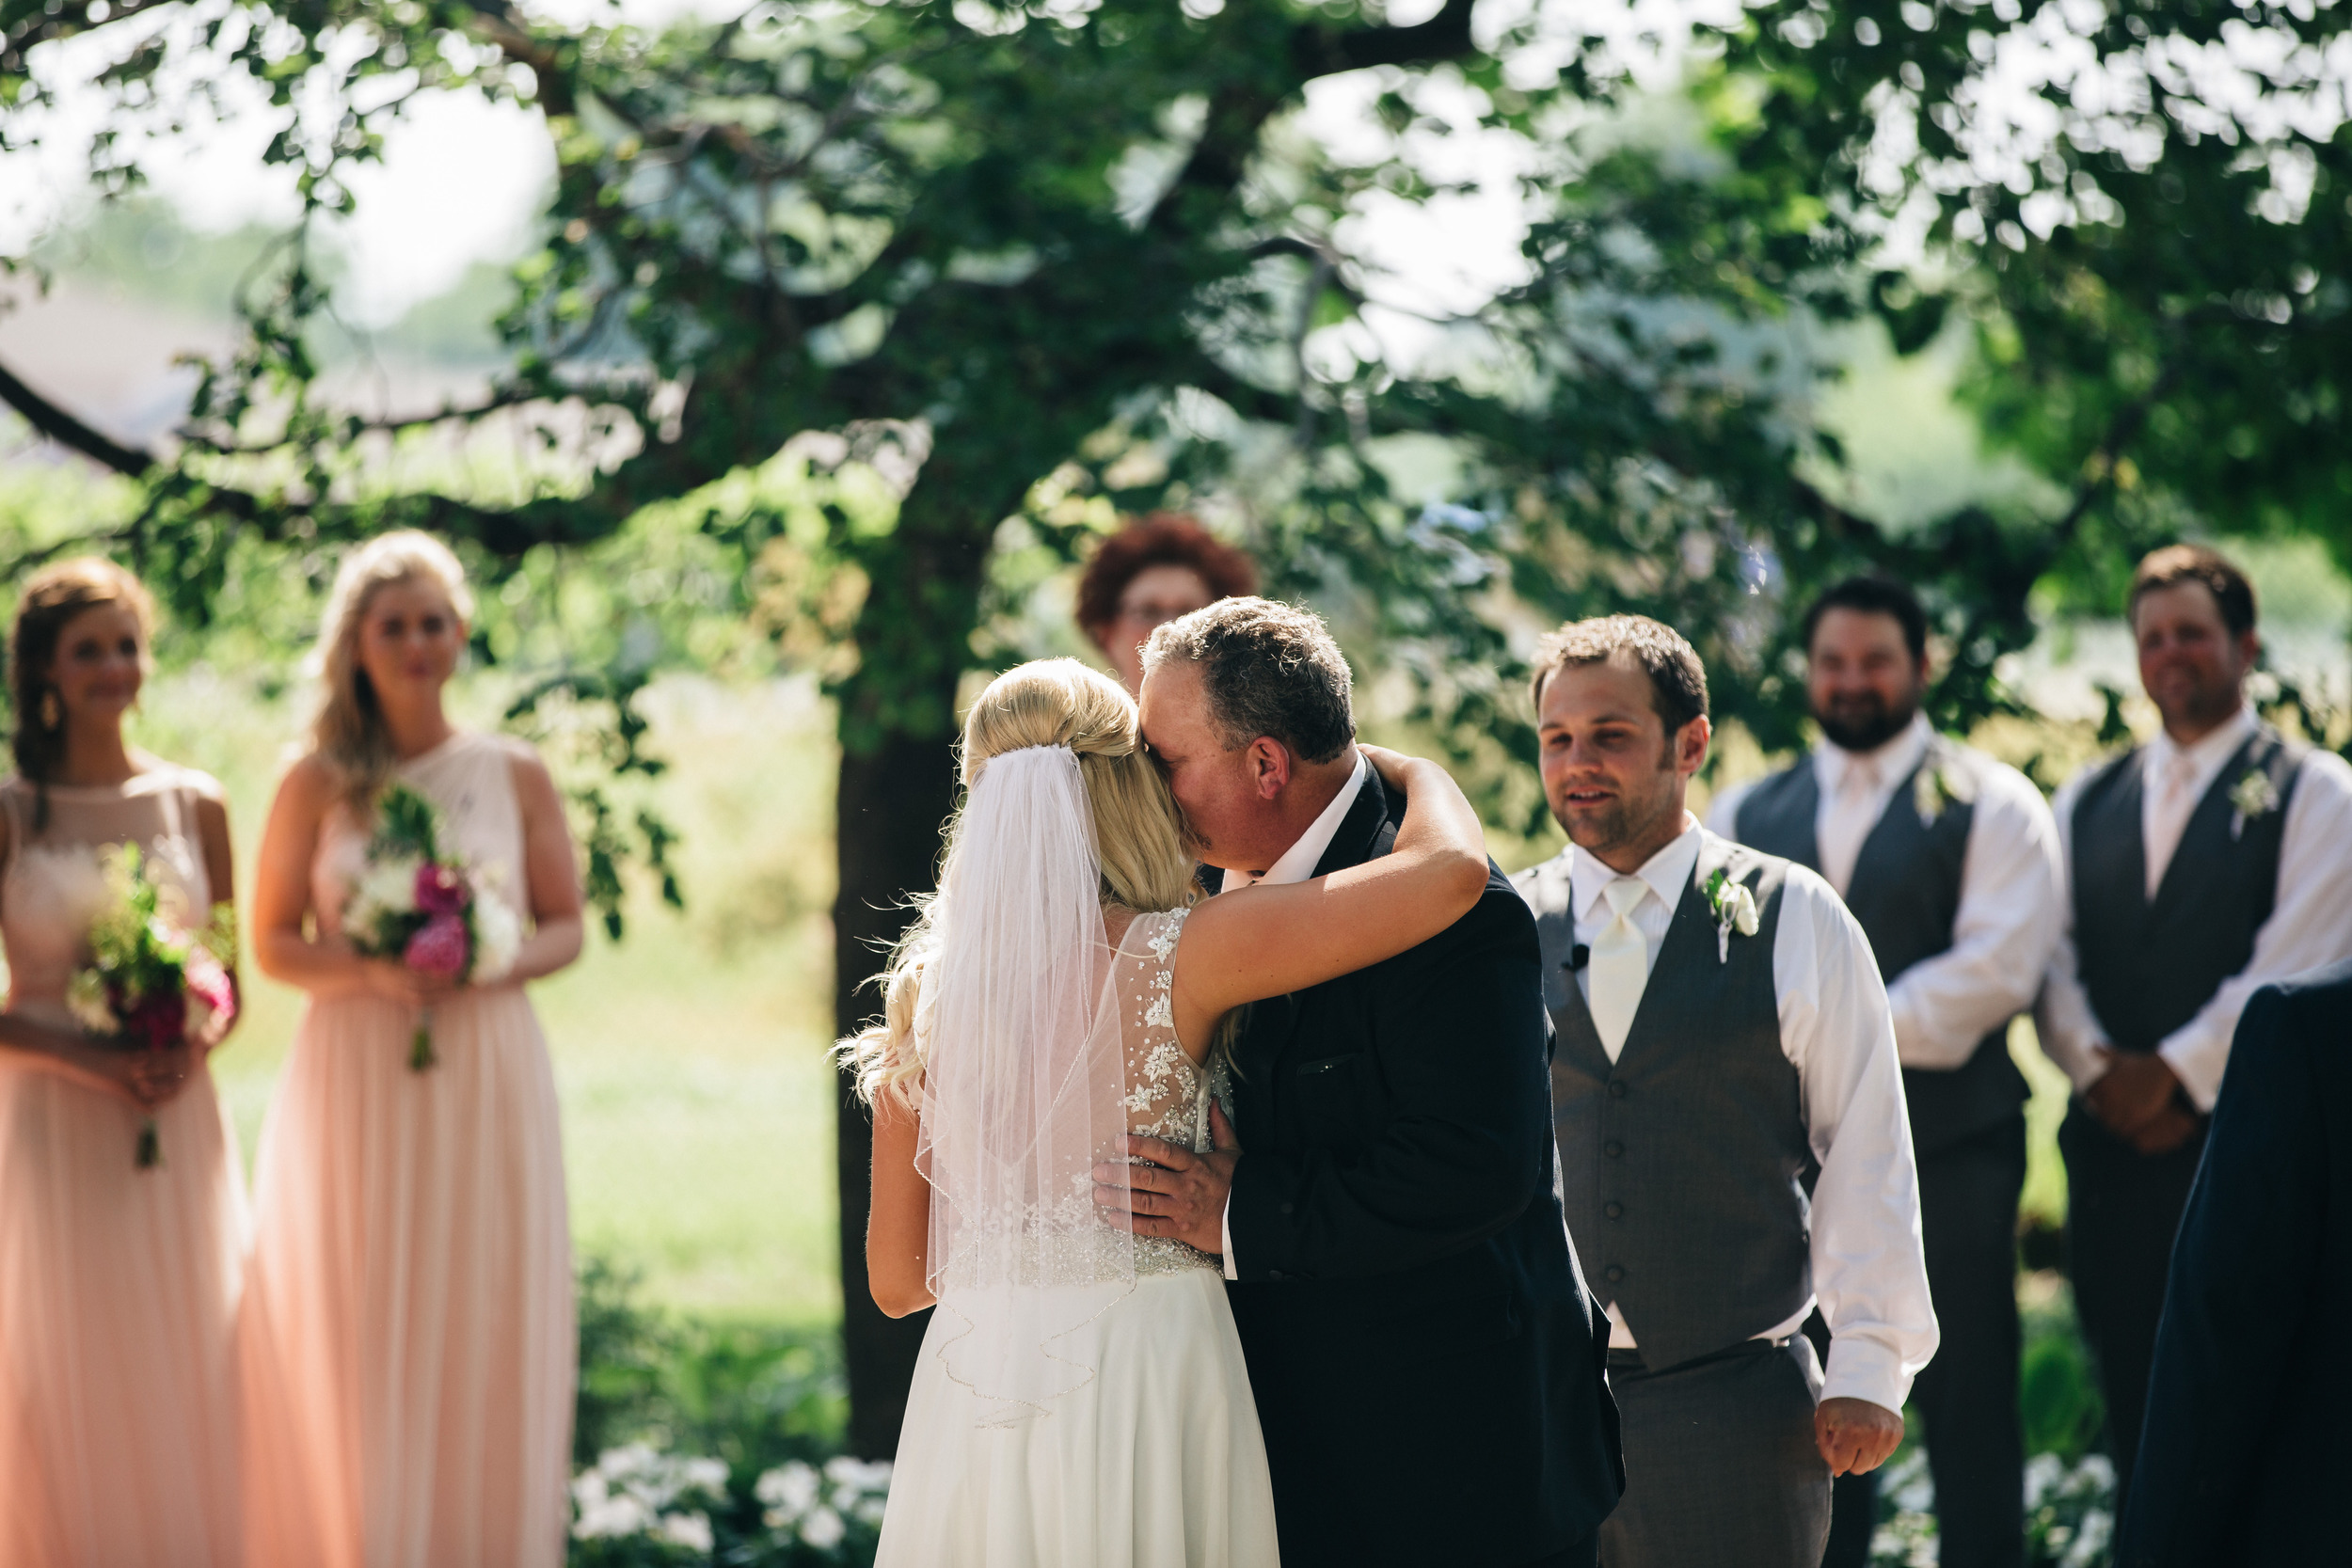 Brides father gives her away during outdoor wedding ceremony in Toledo, Ohio.